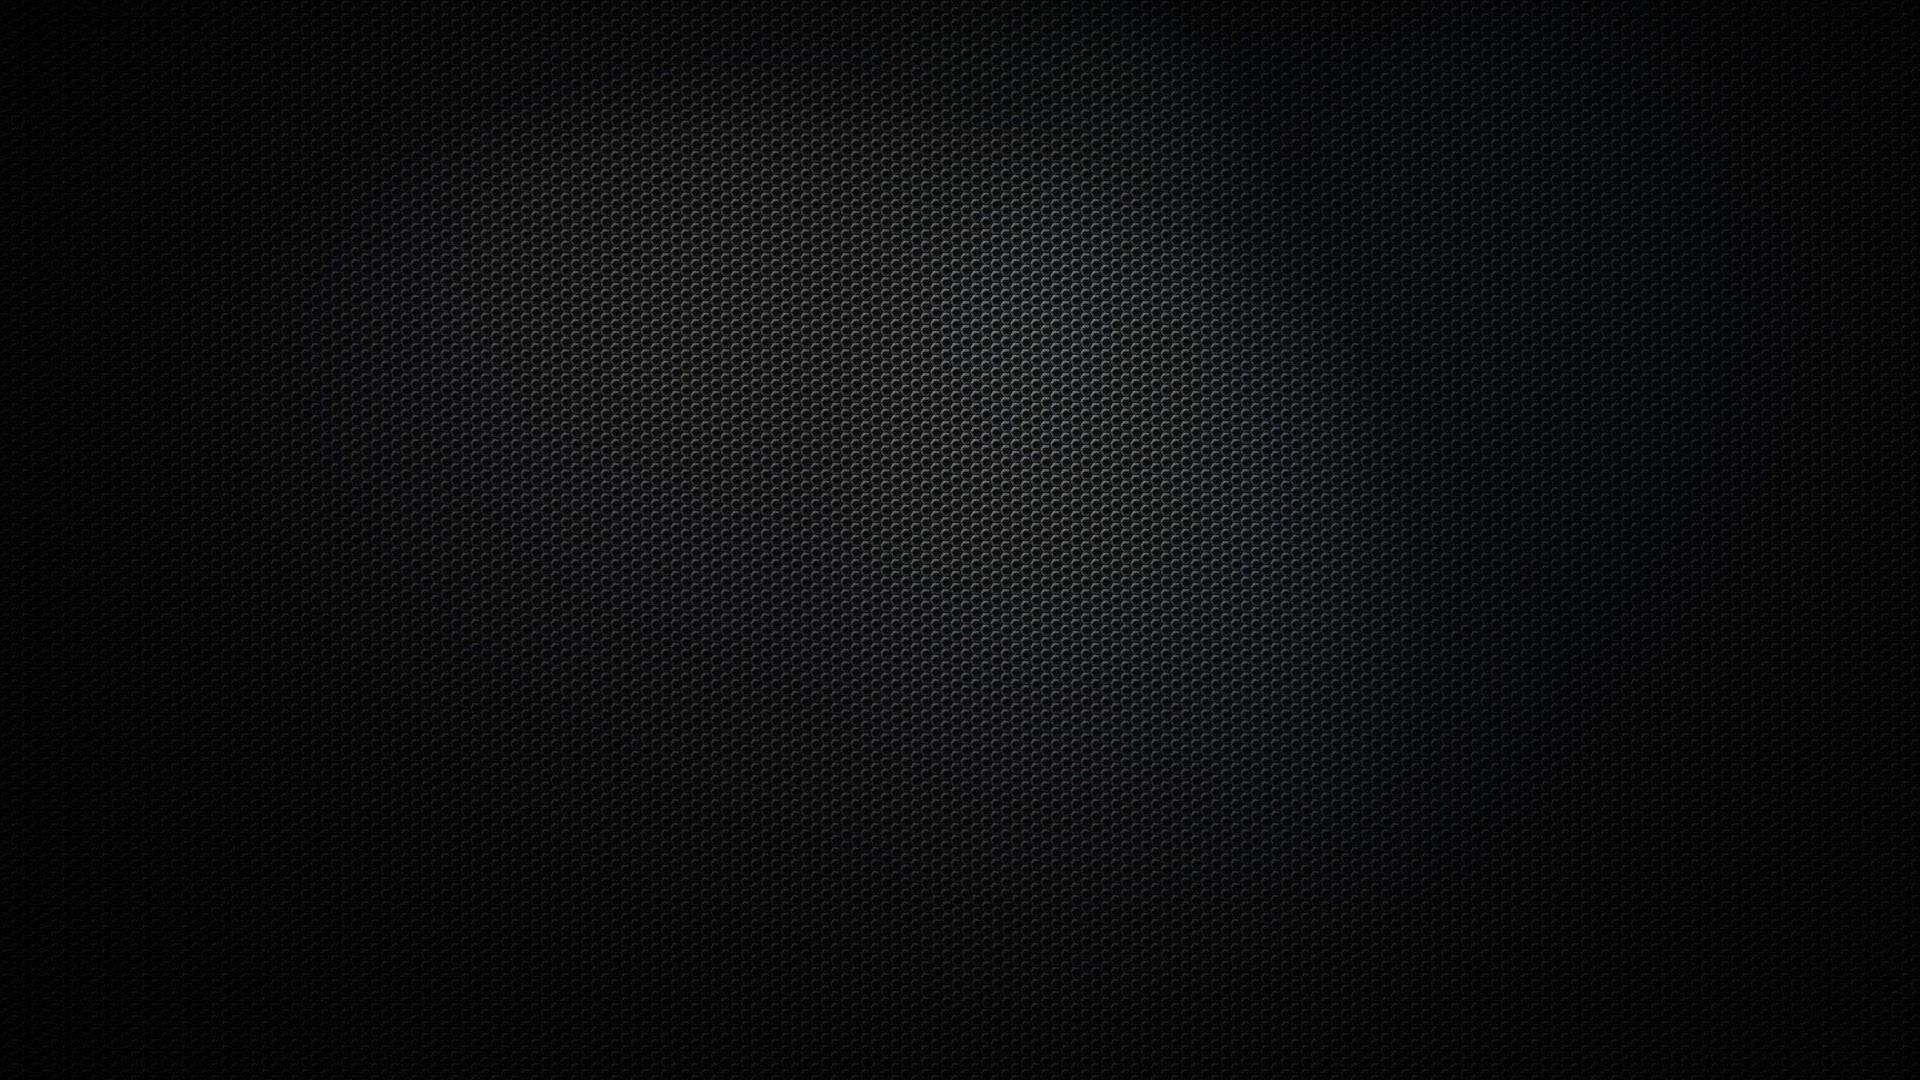 Black High Definition Background HD Wallpaper Projects to Try